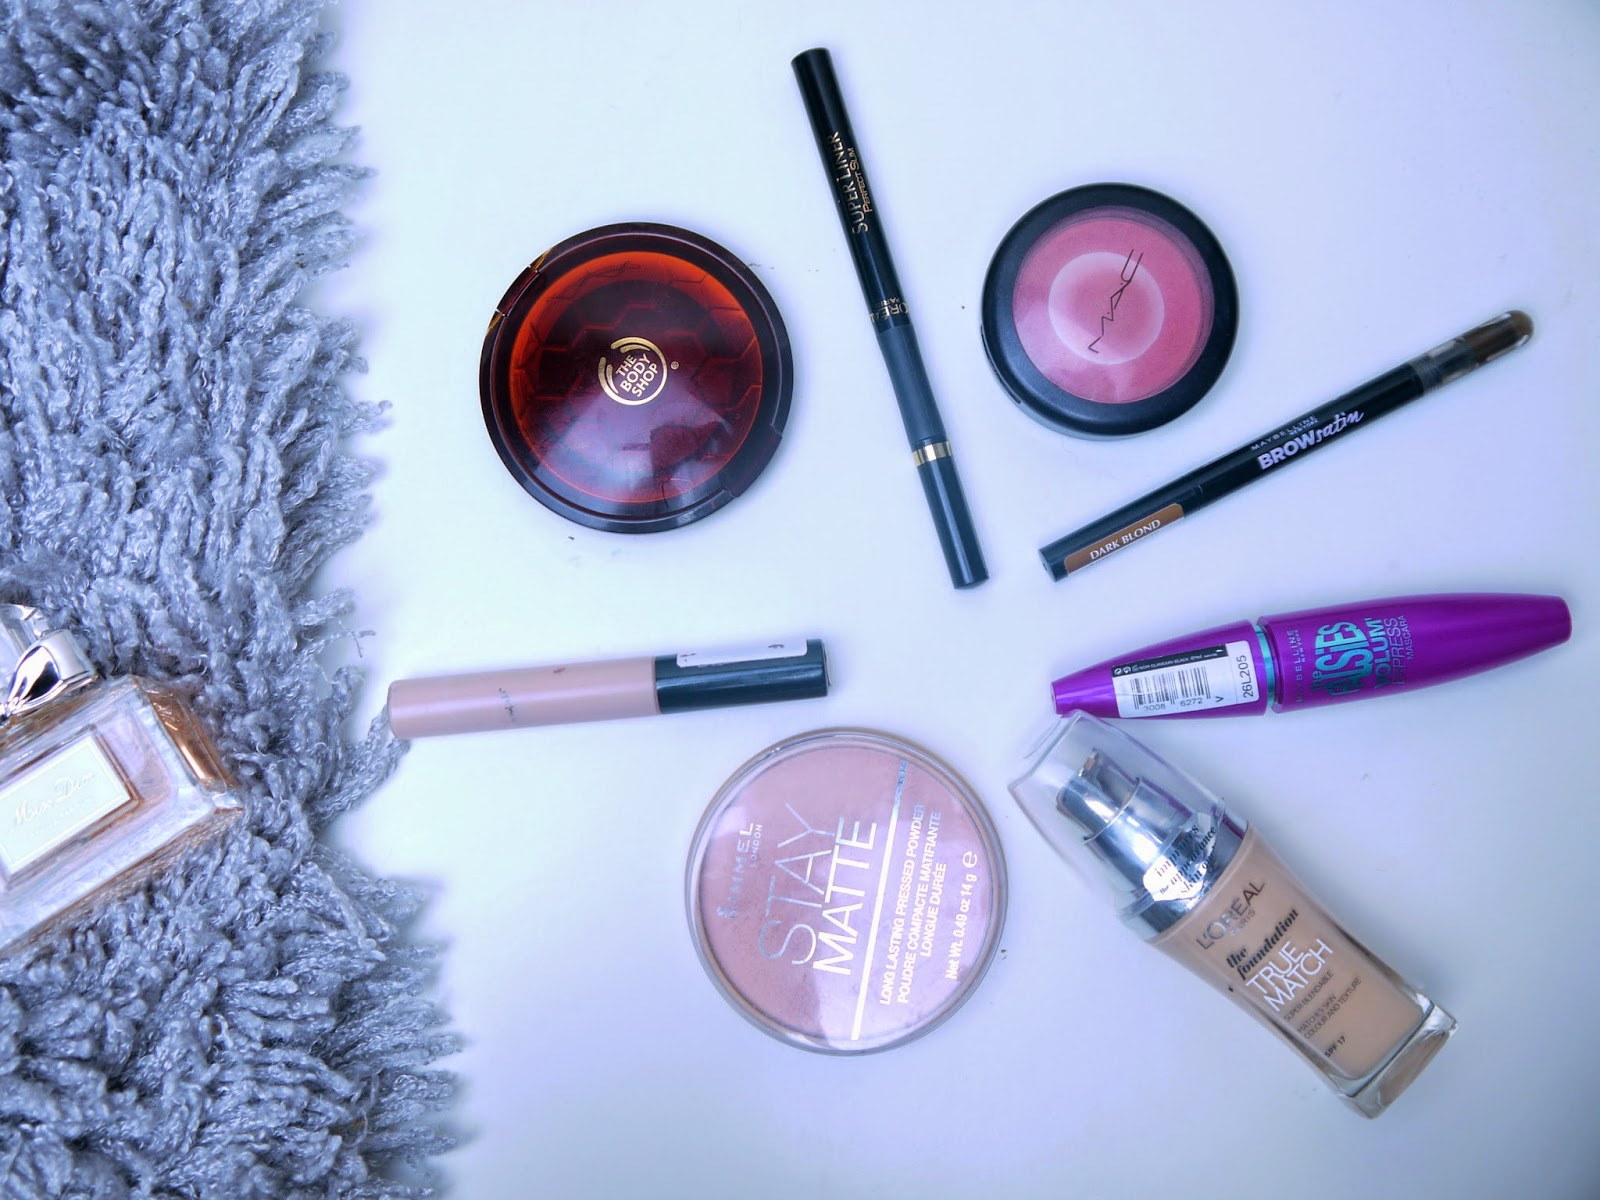 Face of the moment - http://kirstyleighx.blogspot.co.uk